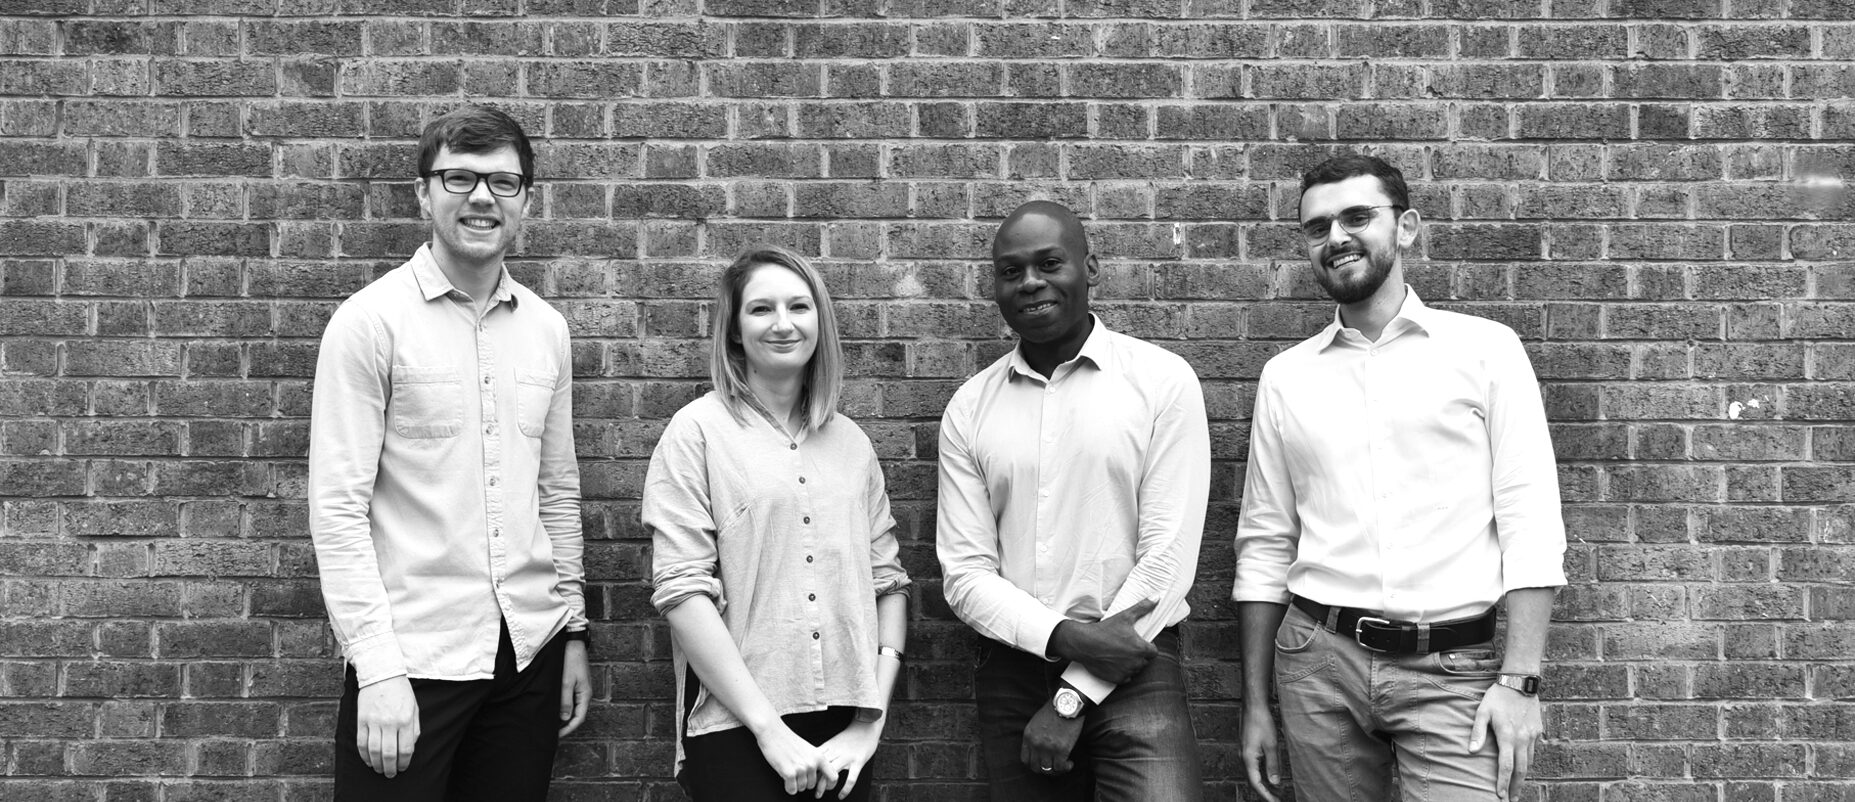 ade architects designers consultants team southwest london